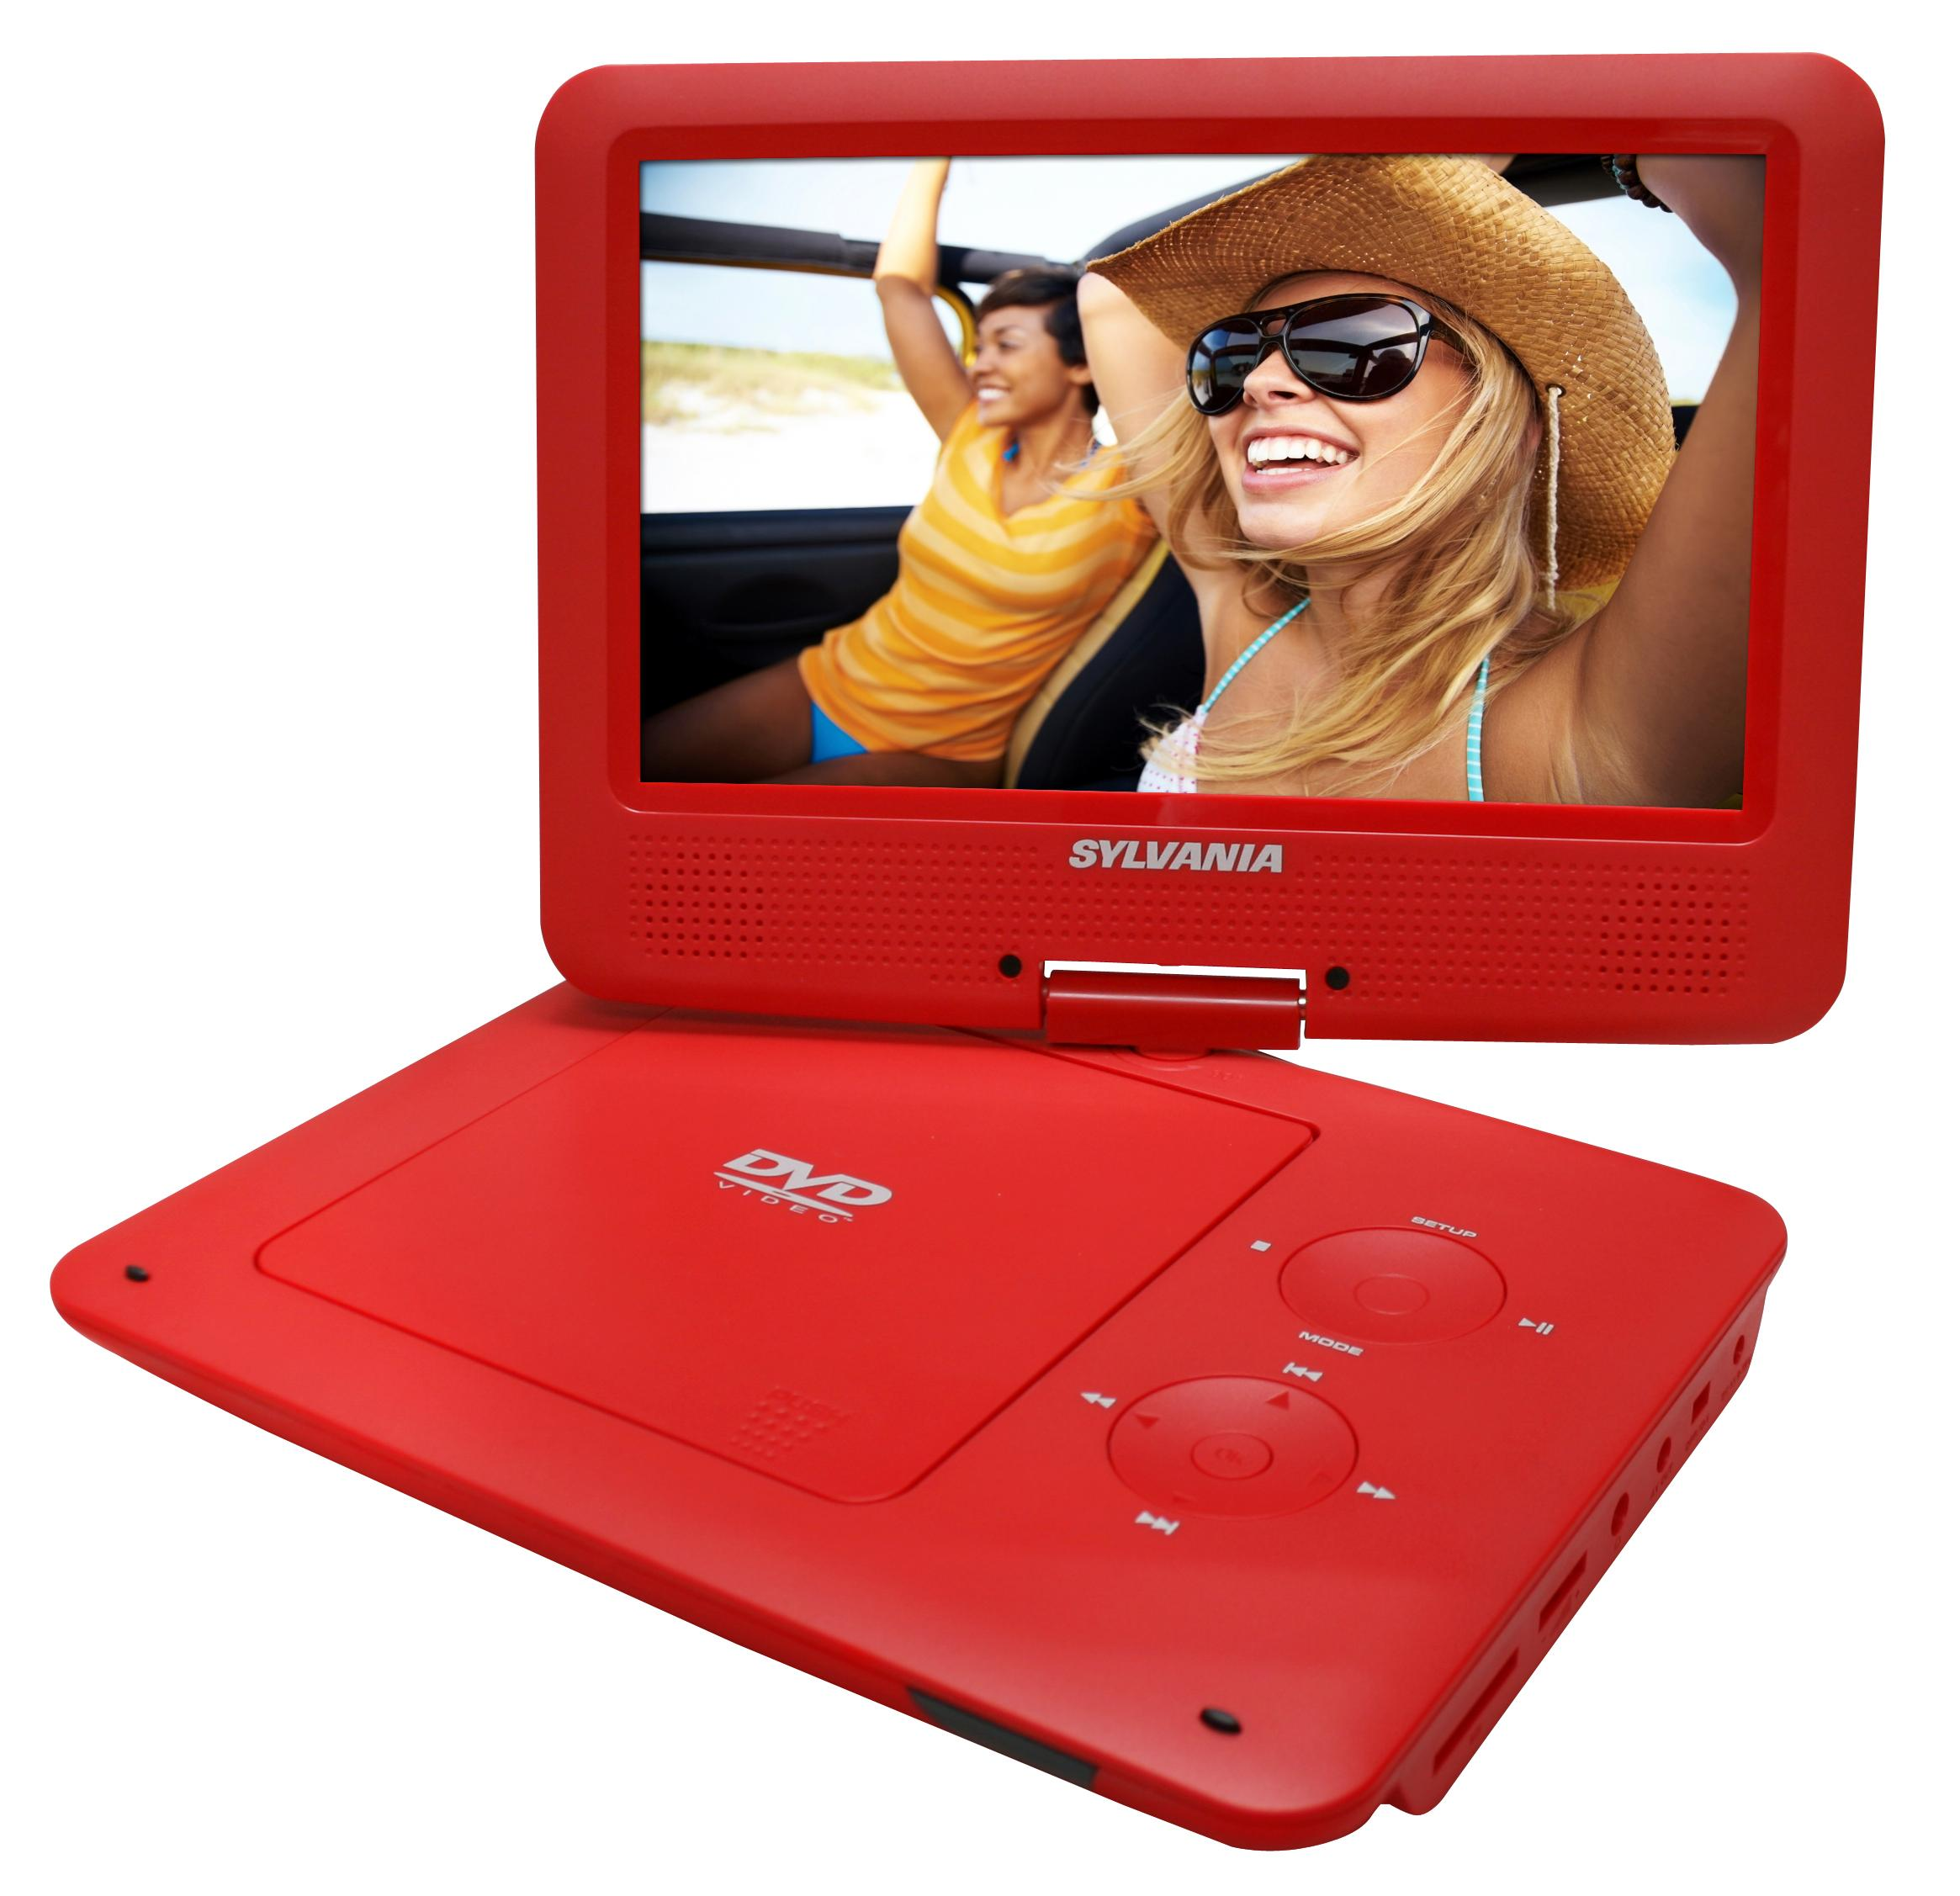 Amazon.com: Sylvania 9-Inch Swivel Screen Portable DVD/CD/MP3 Player with 5 Hour Built-In